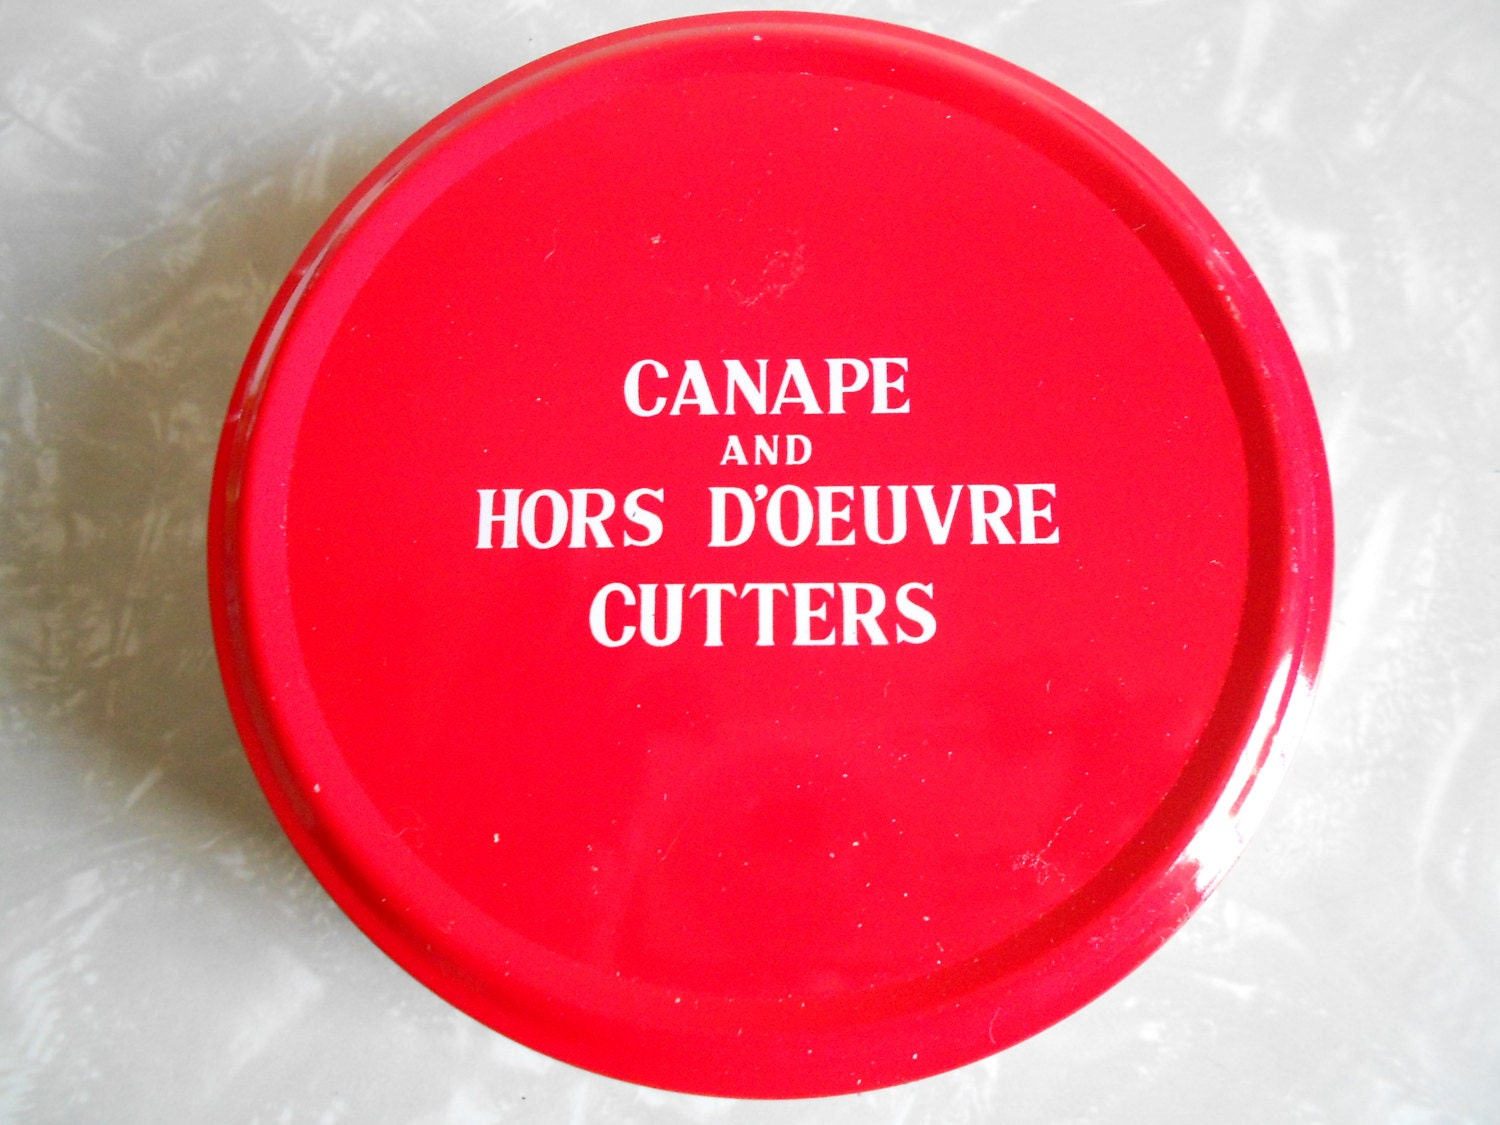 Vintage canape and hors d 39 oeuvre cutters for Canape hors d oeuvres difference